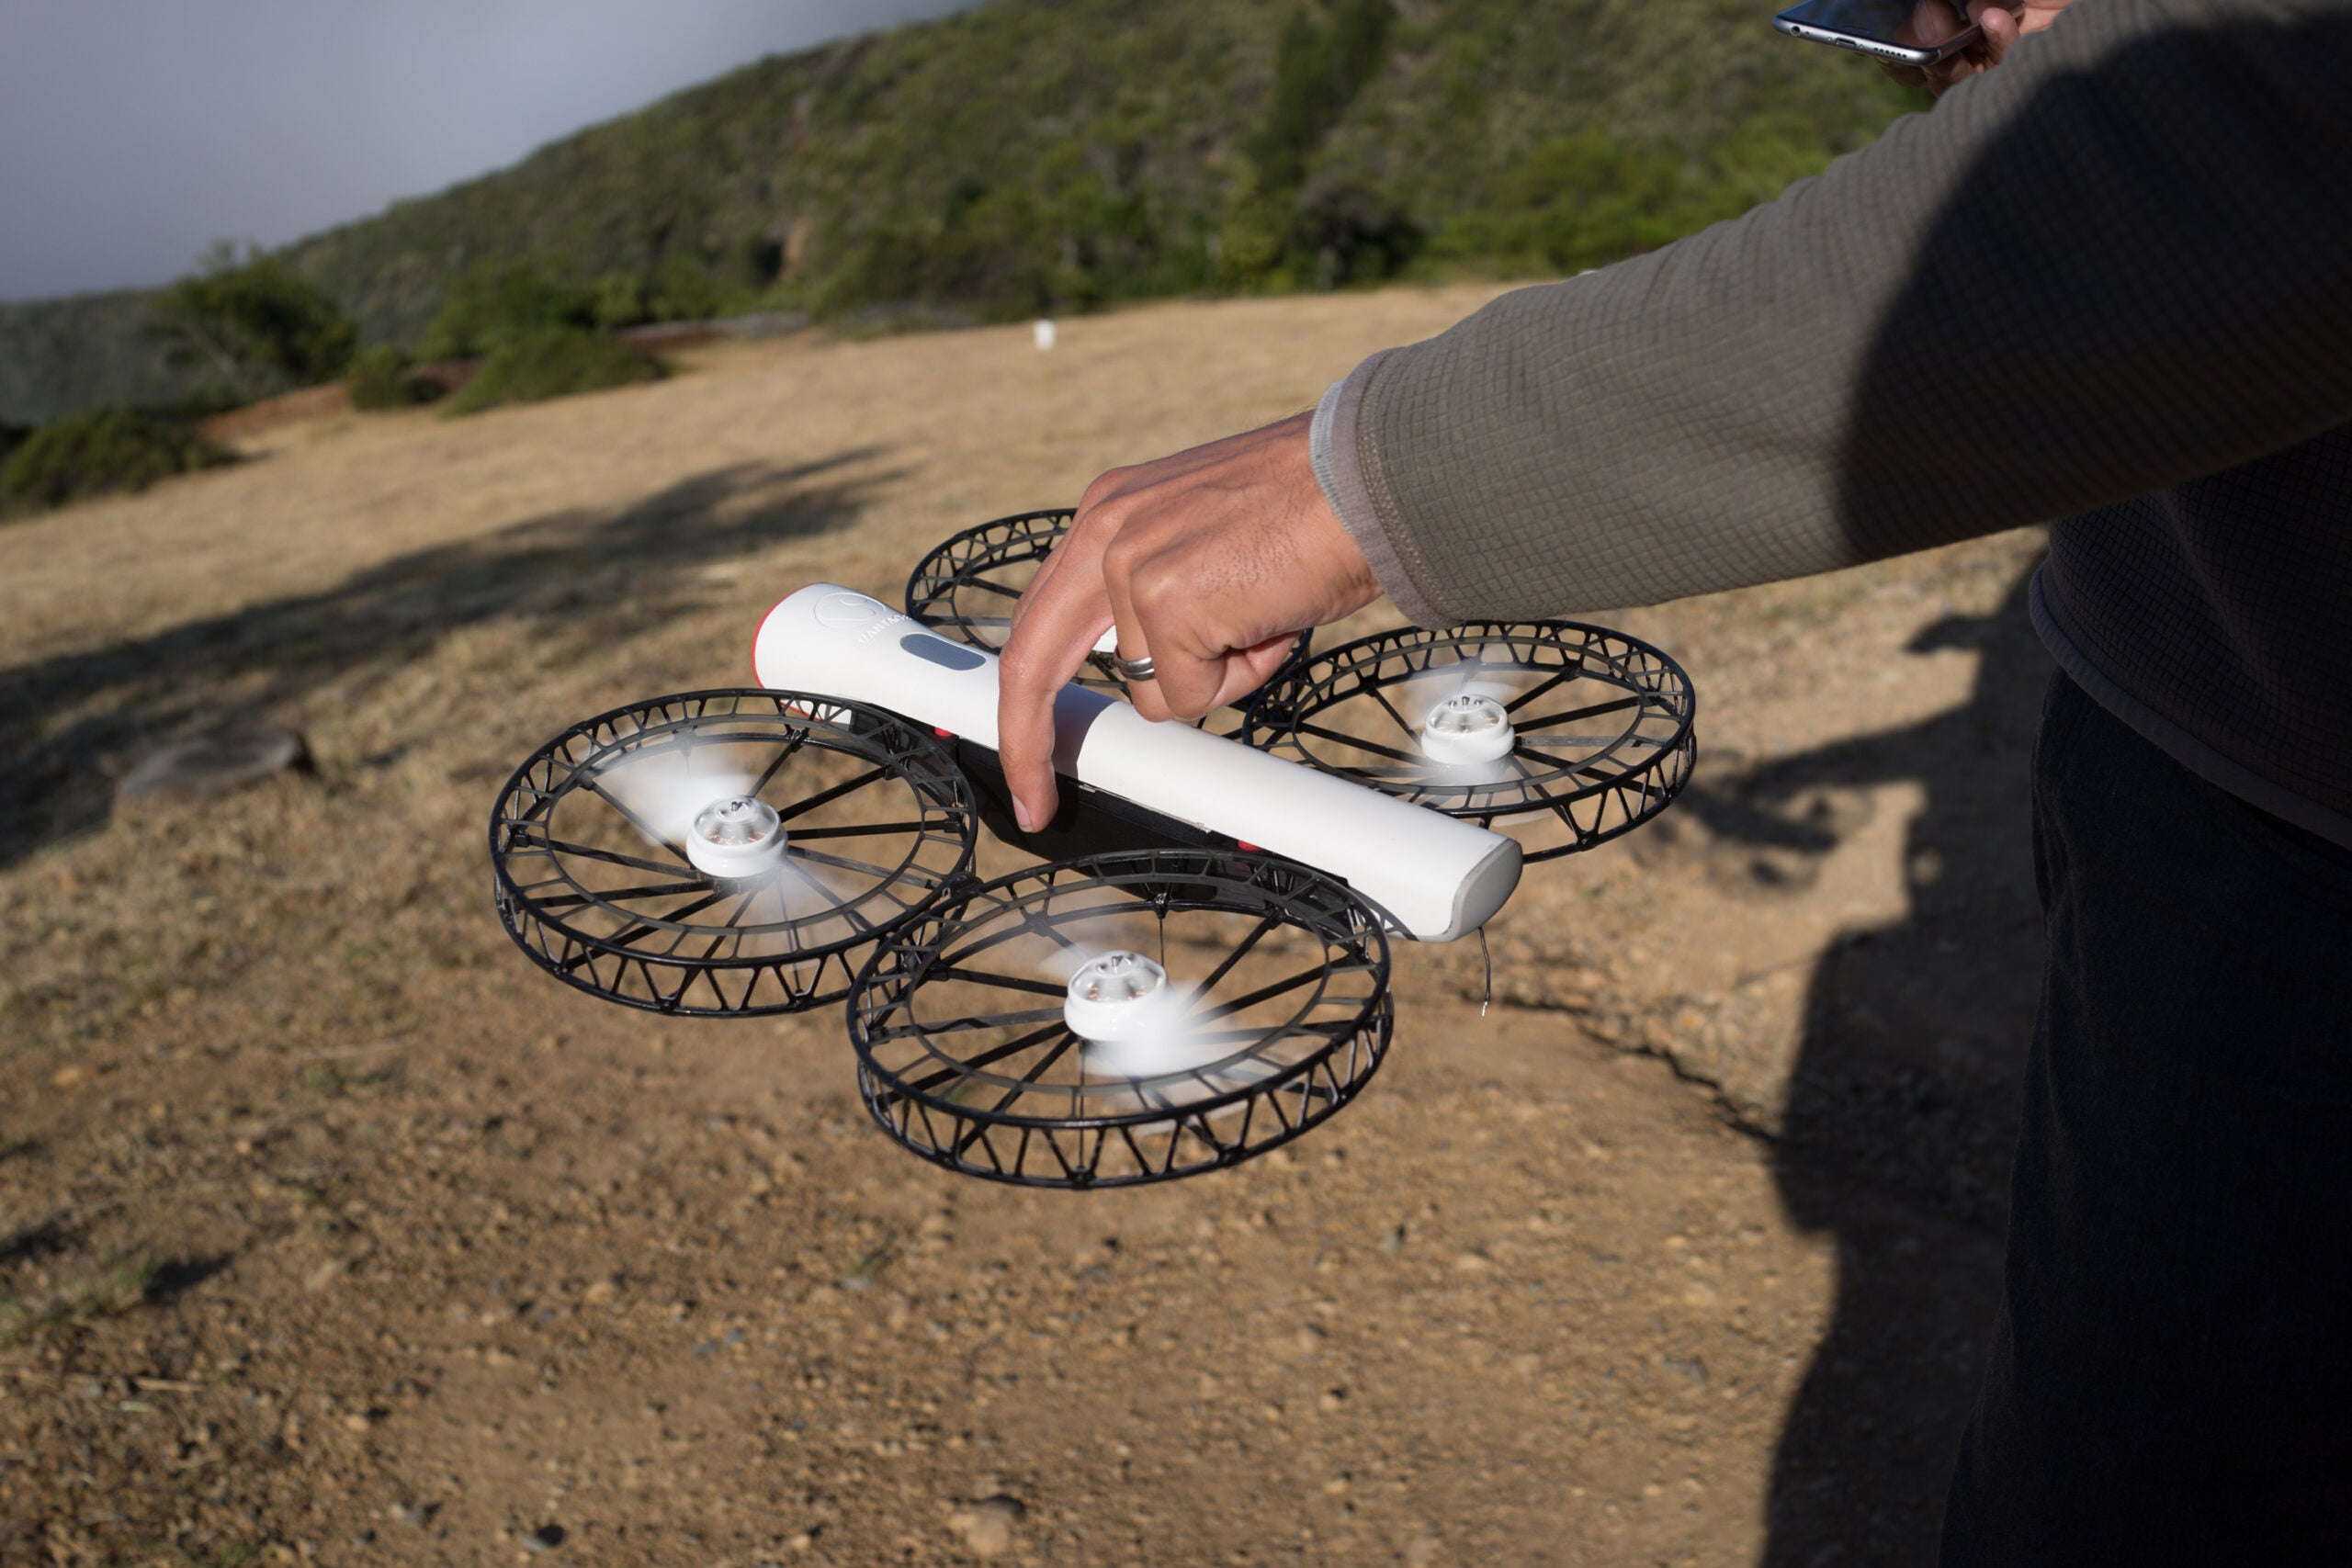 The US Army is still looking for its perfect quadcopter drone